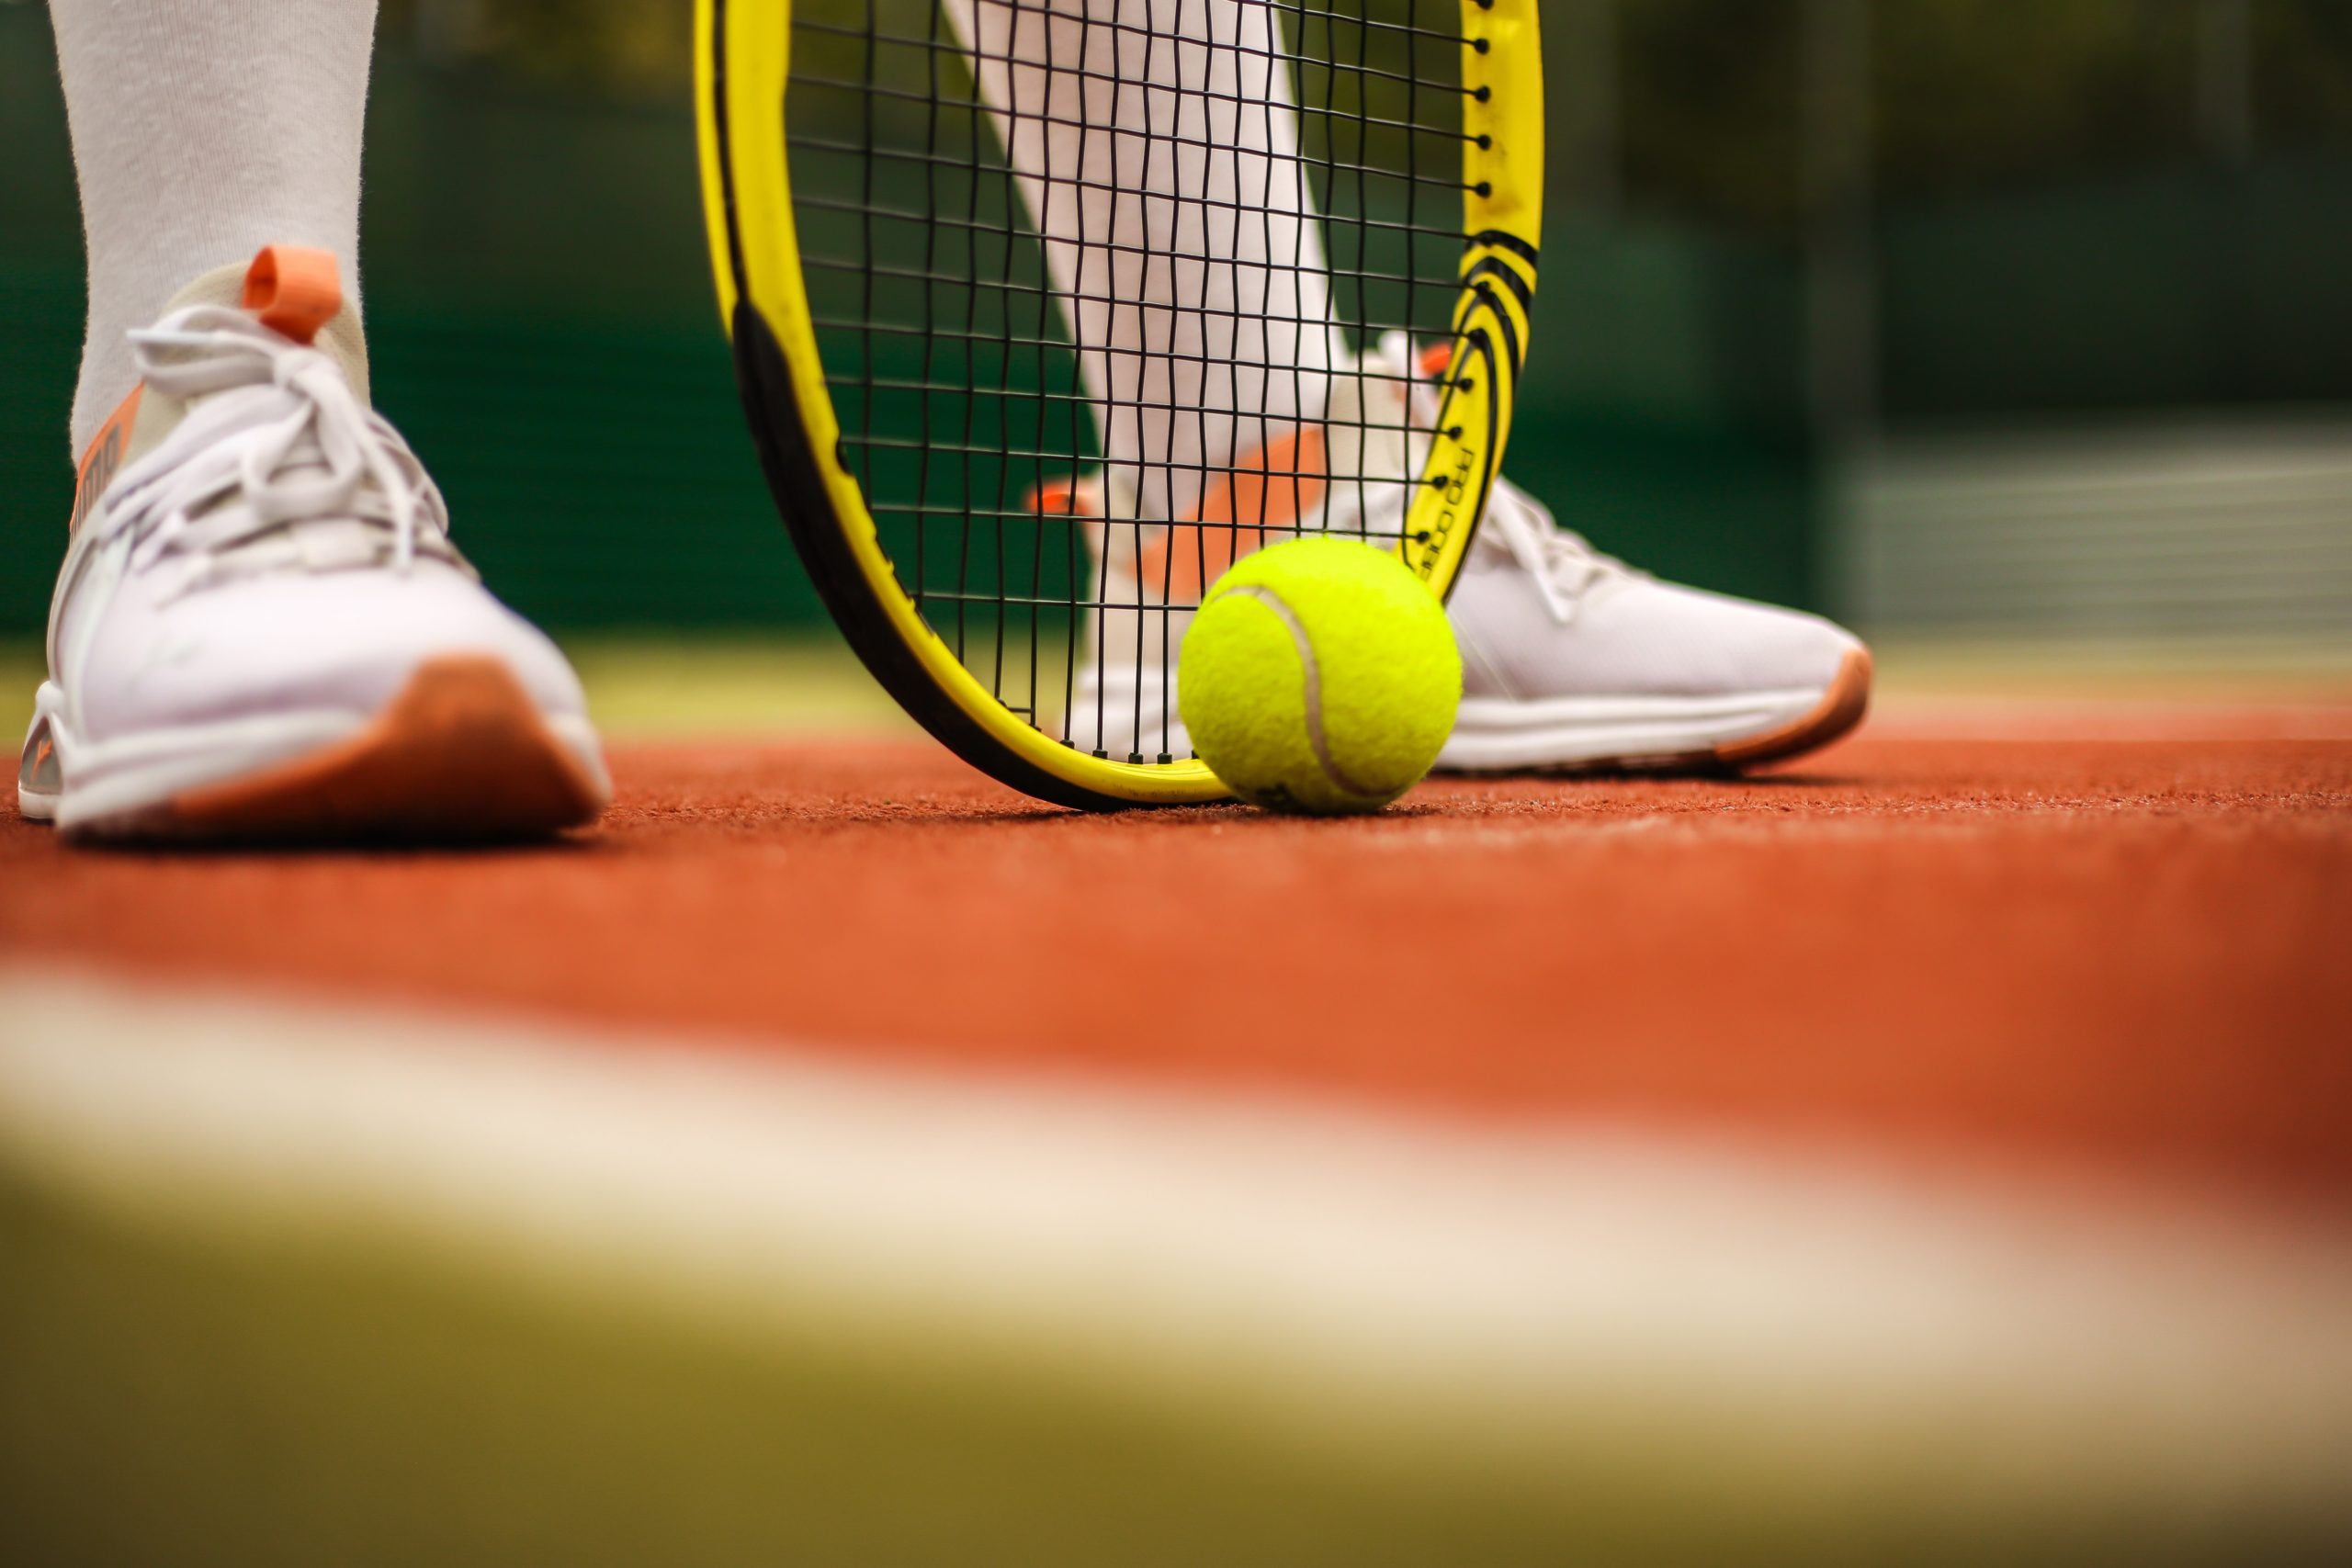 Tennis shoes, racket and ball